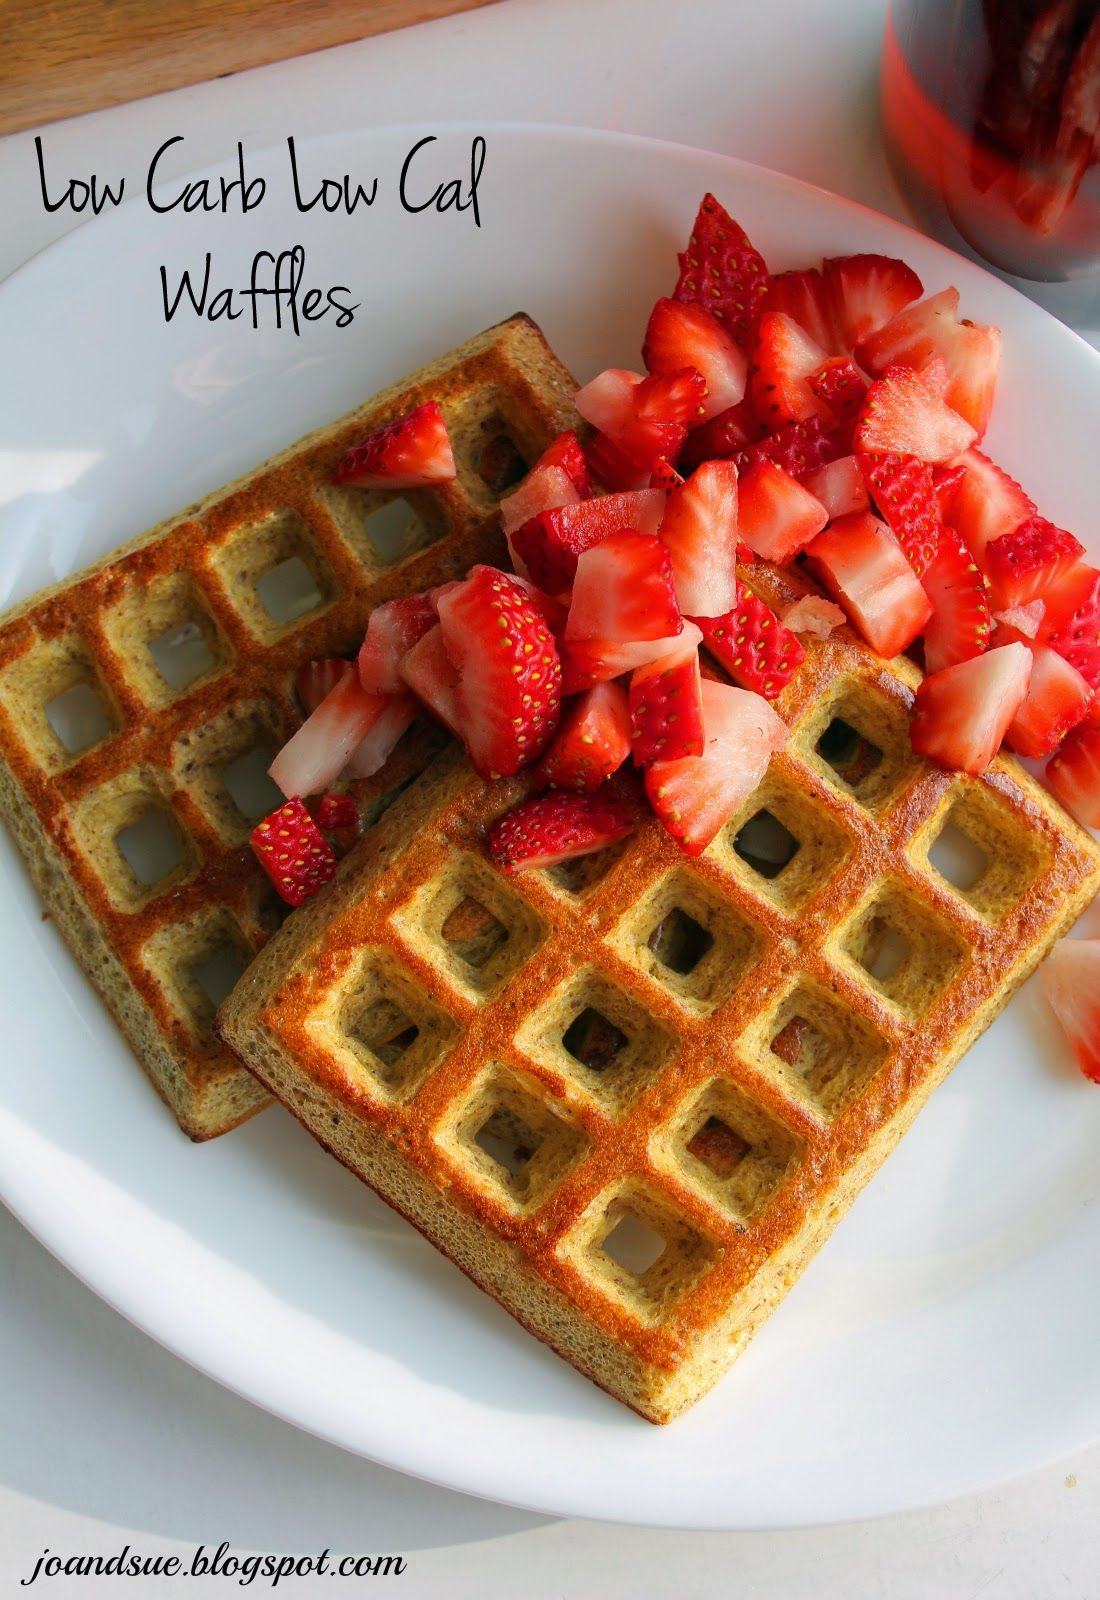 jo and sue: low carb low cal waffles - 67 calories, 6 carbs, 3 fat